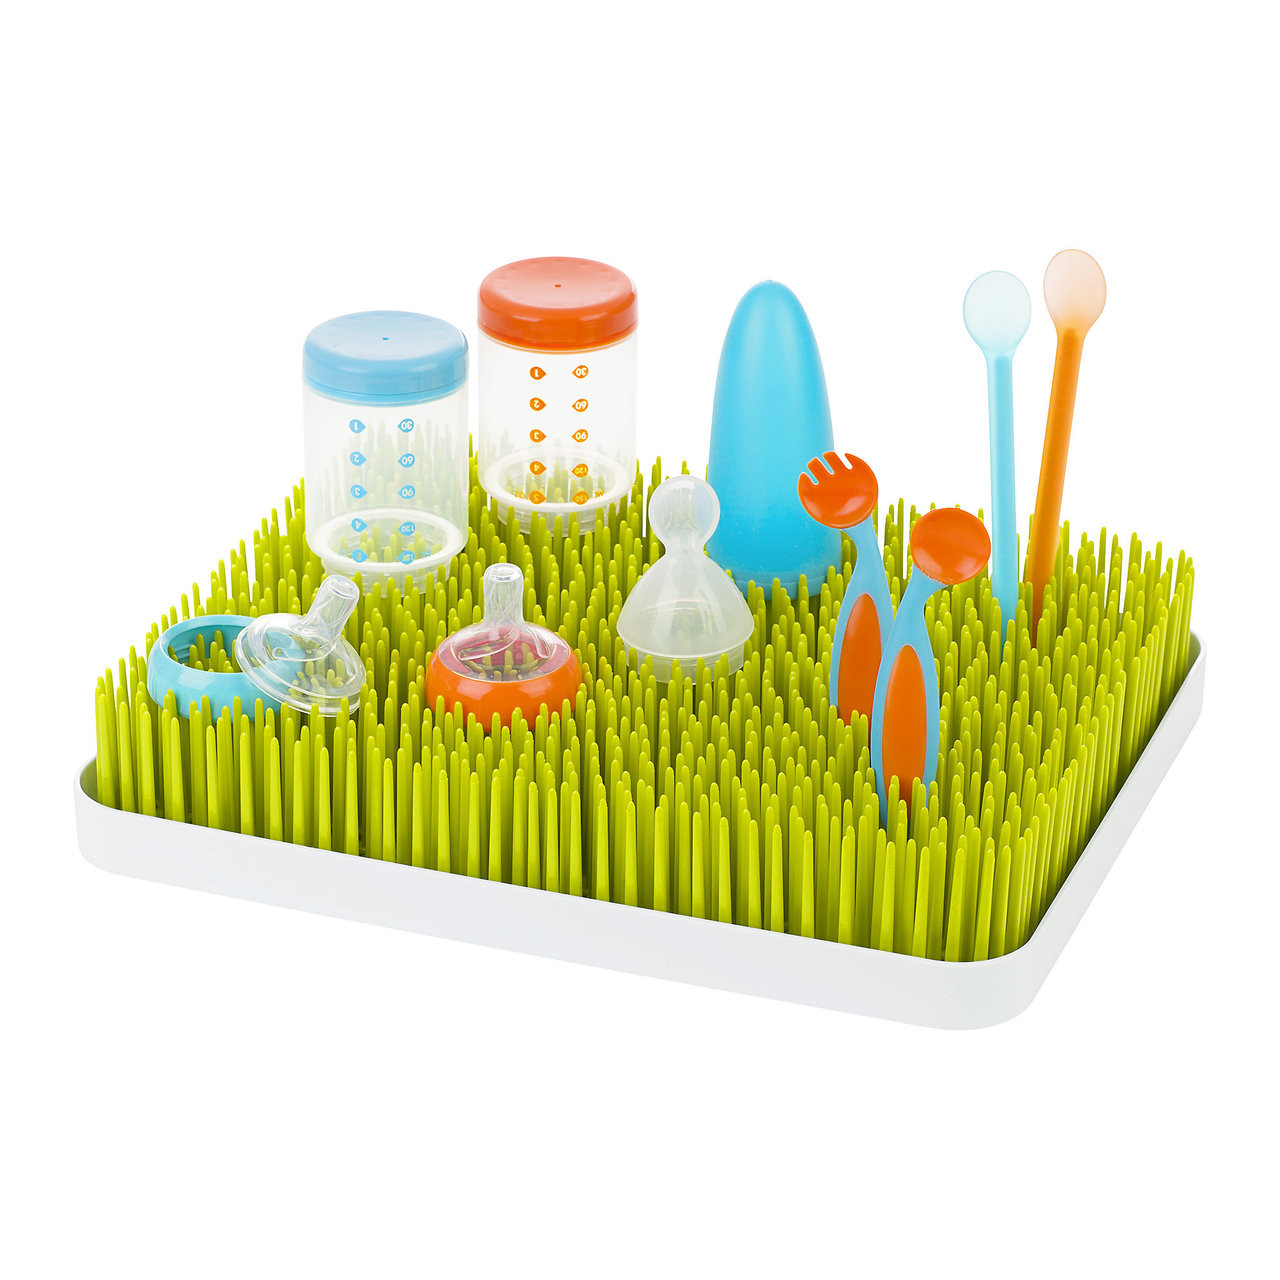 Boon Lawn Spring Countertop Bottle Drying Rack Green